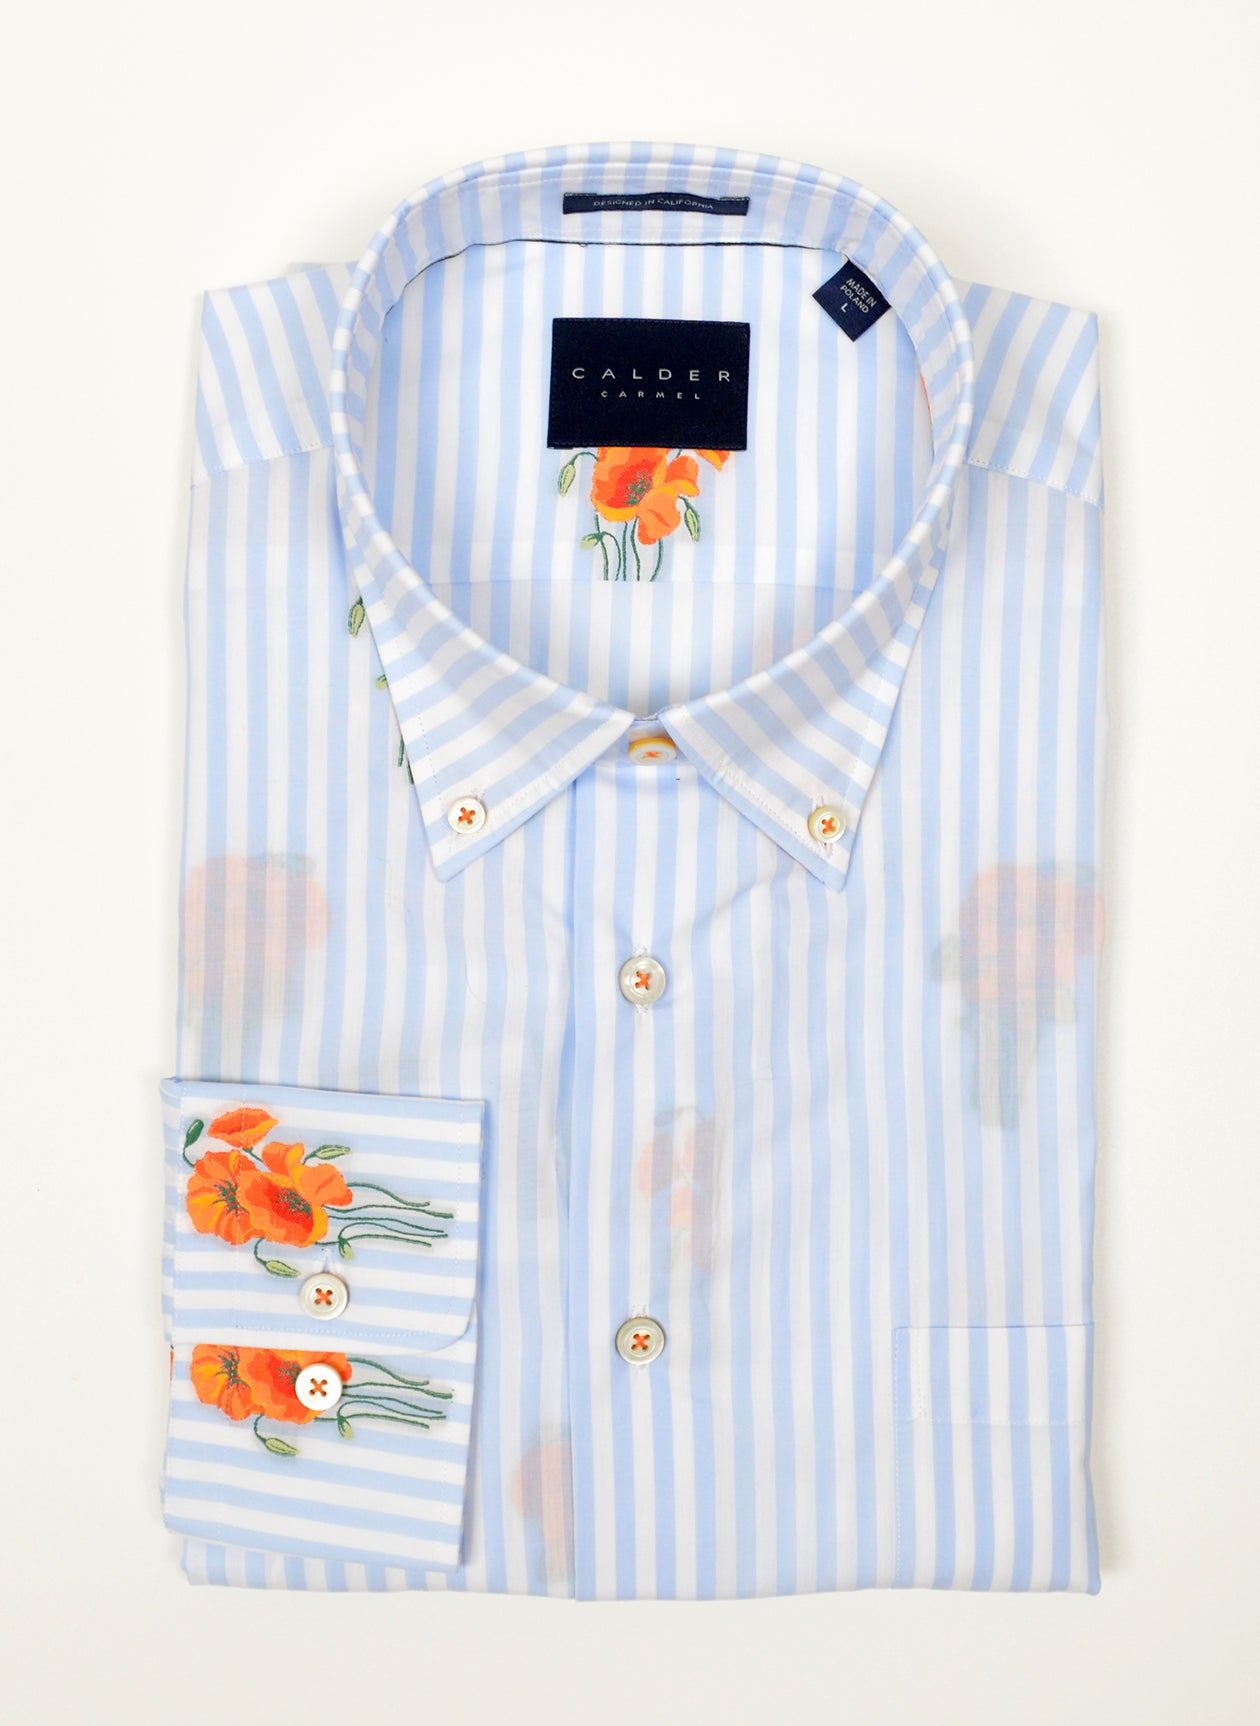 SKY TAPE STRIPE WITH CALIFORNIA POPPY COUPE SHIRT - POPPY